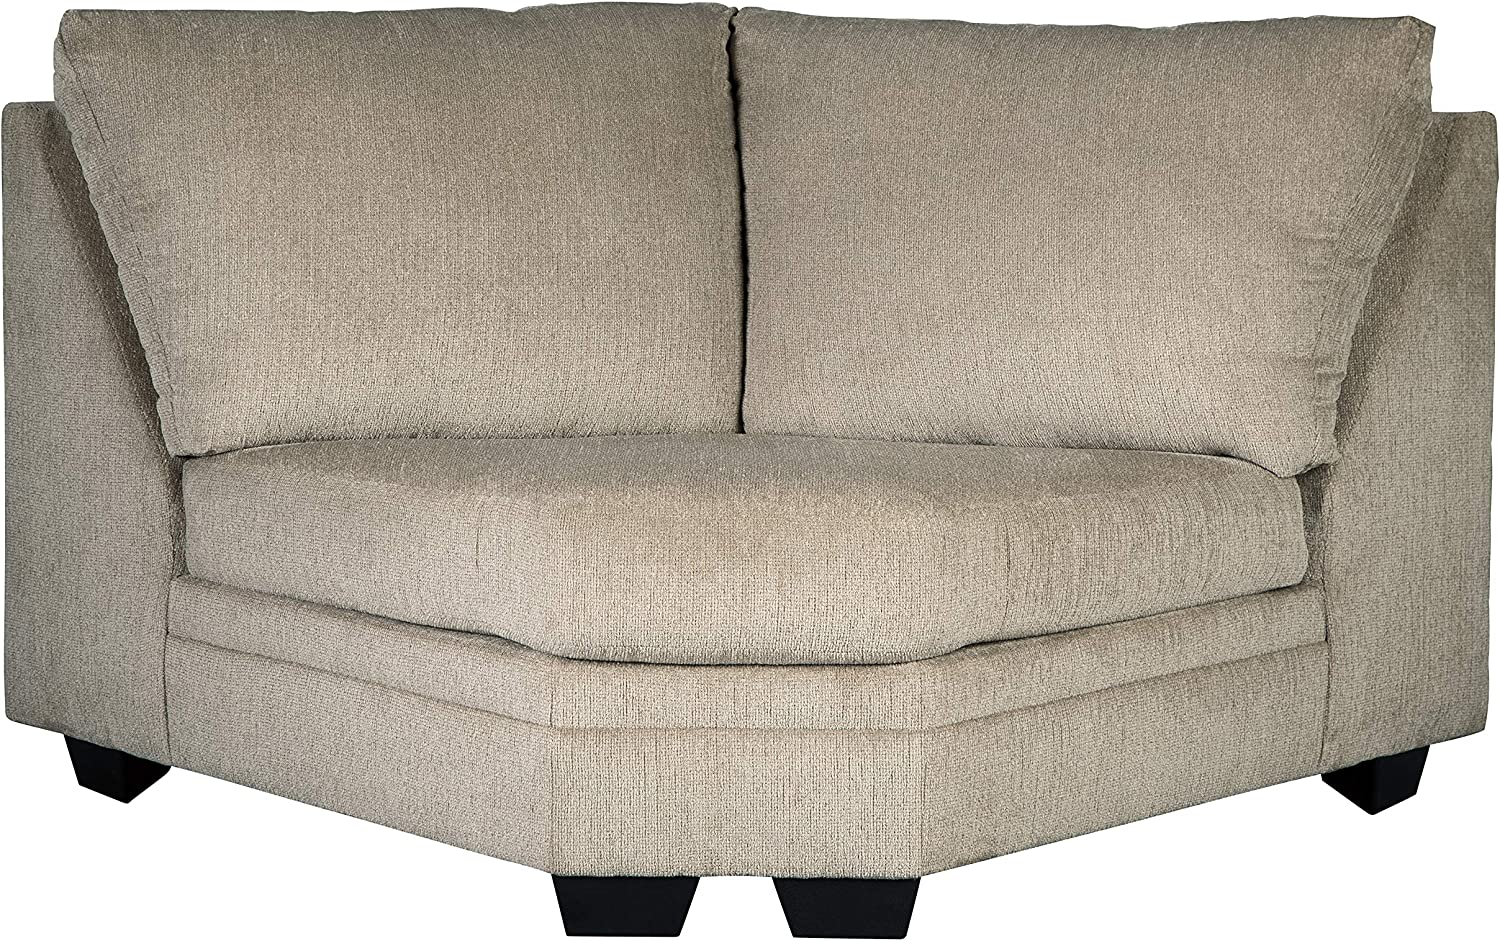 Signature Design by Ashley - Dorsten Contemporary Wedge - Standalone Chair or Sectional Component, Sisal Beige